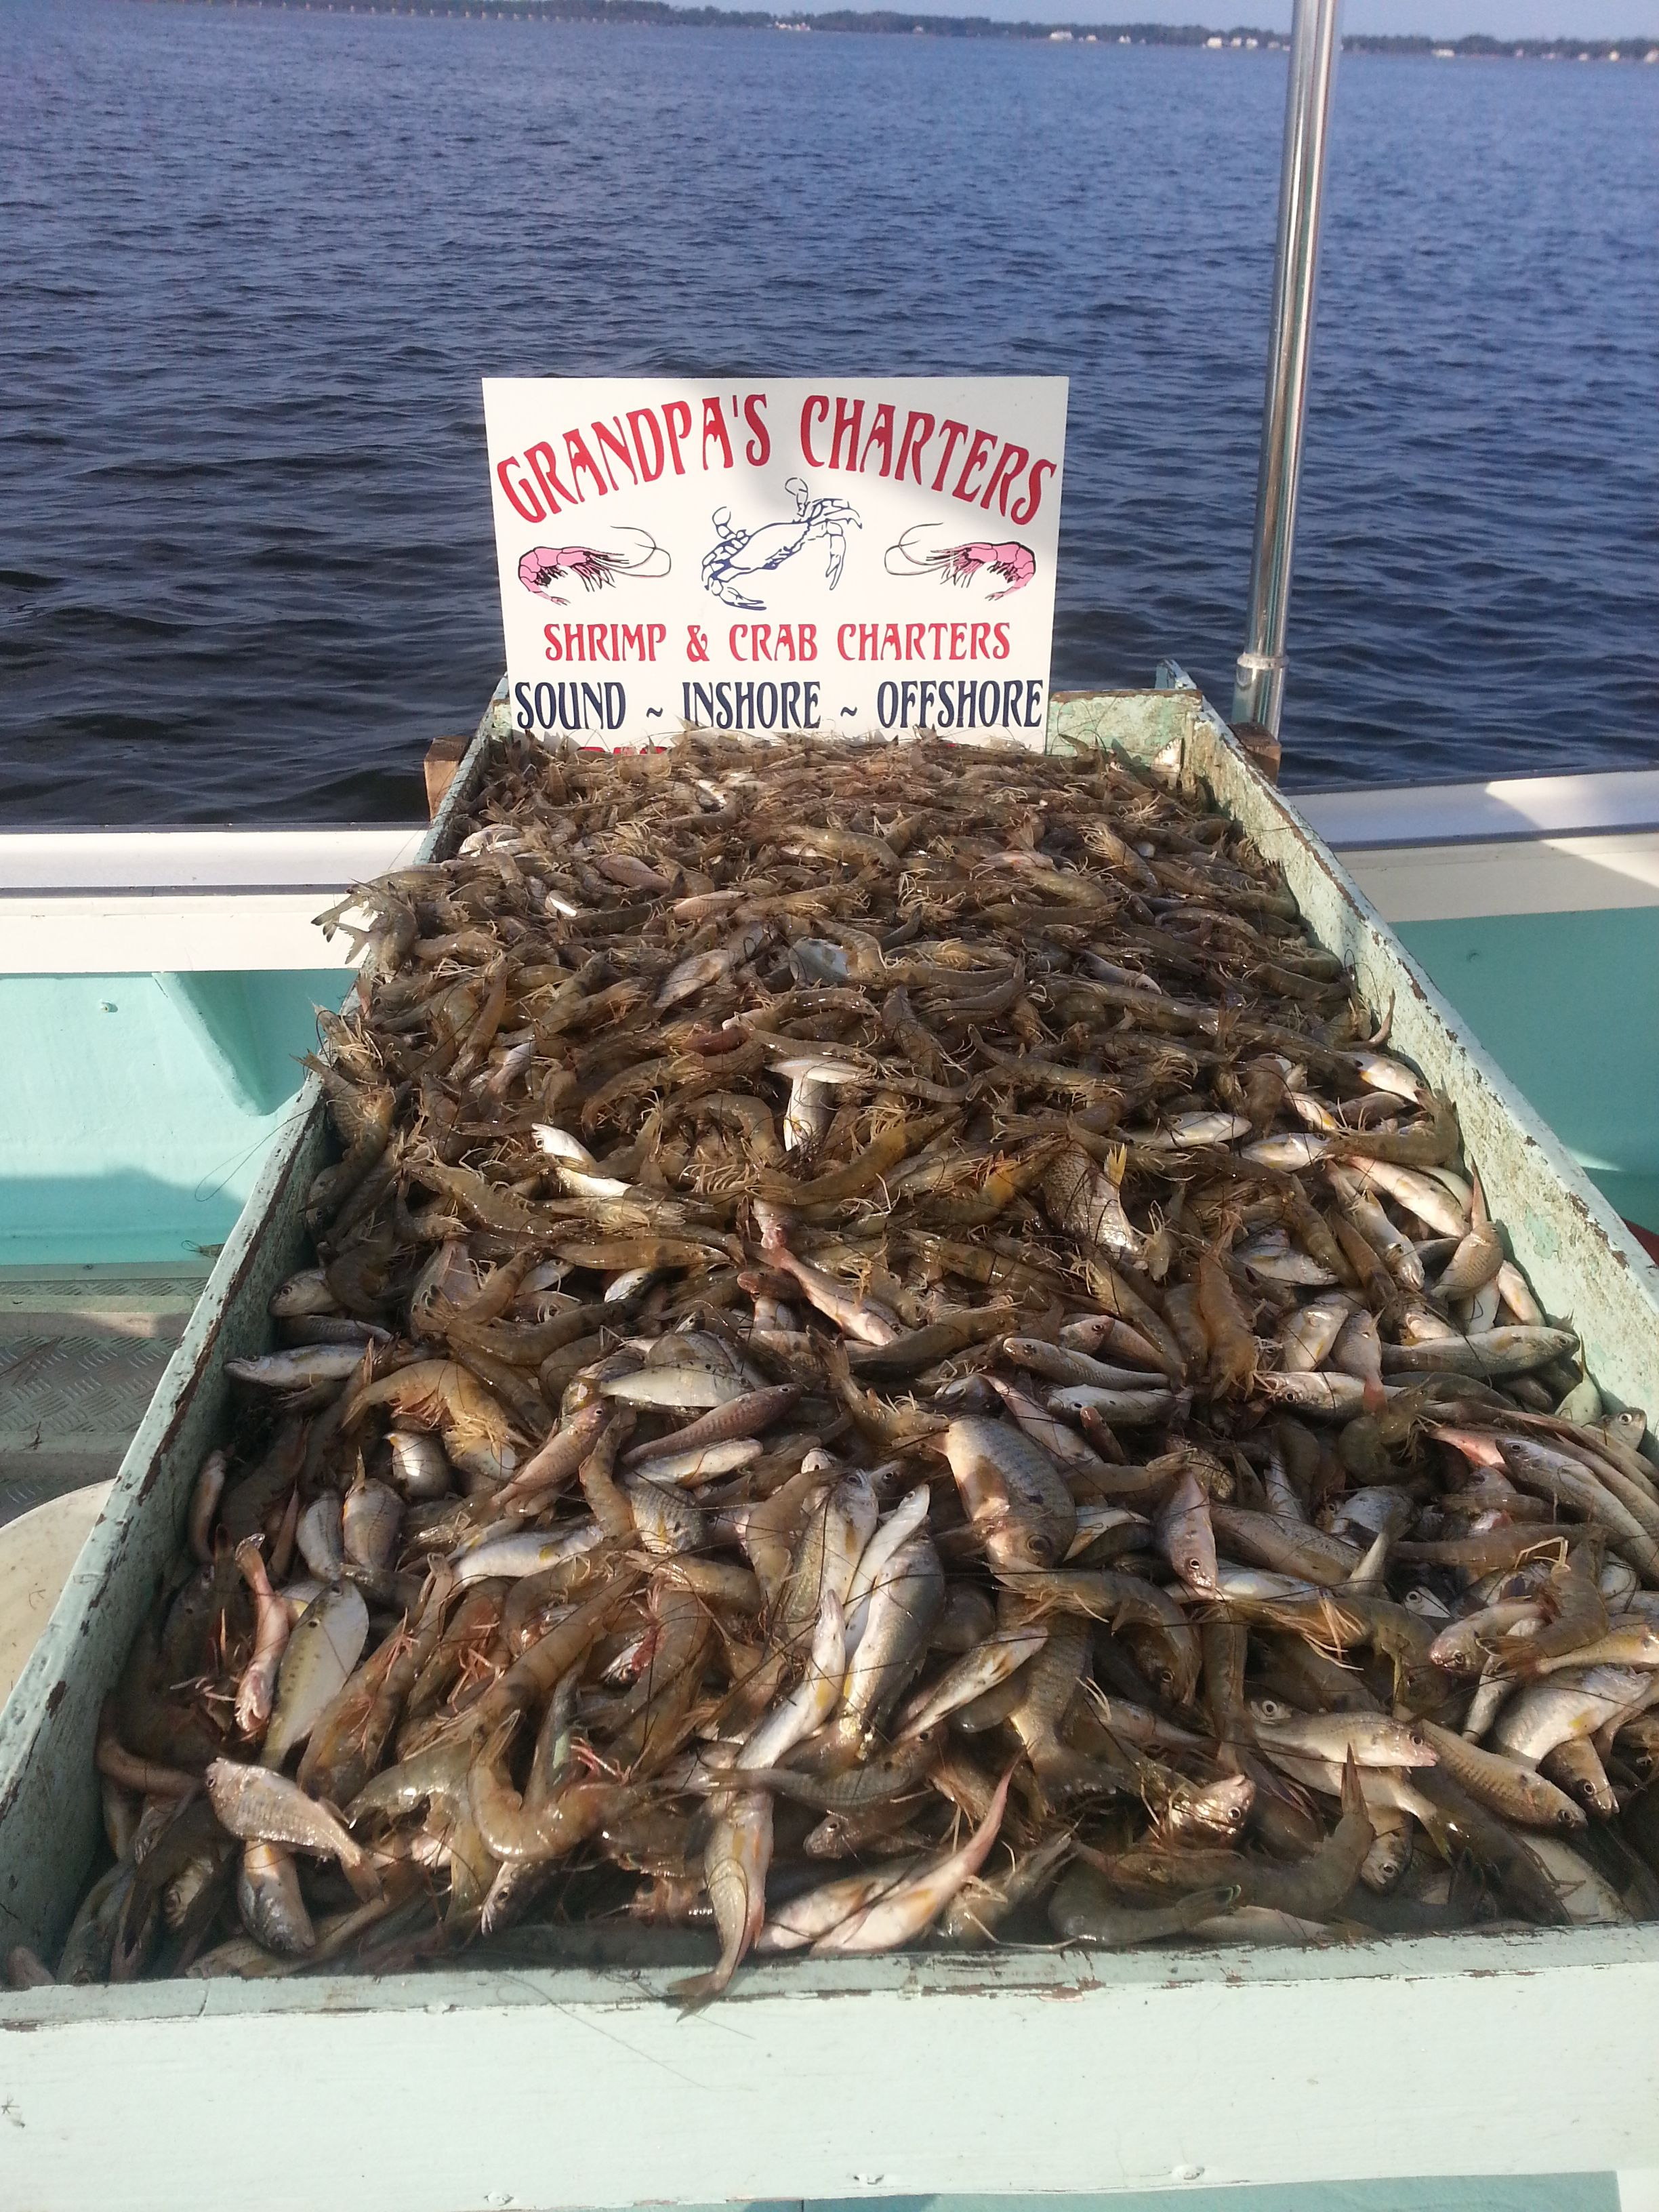 Shrimp & Crab Charters in the Outer Banks